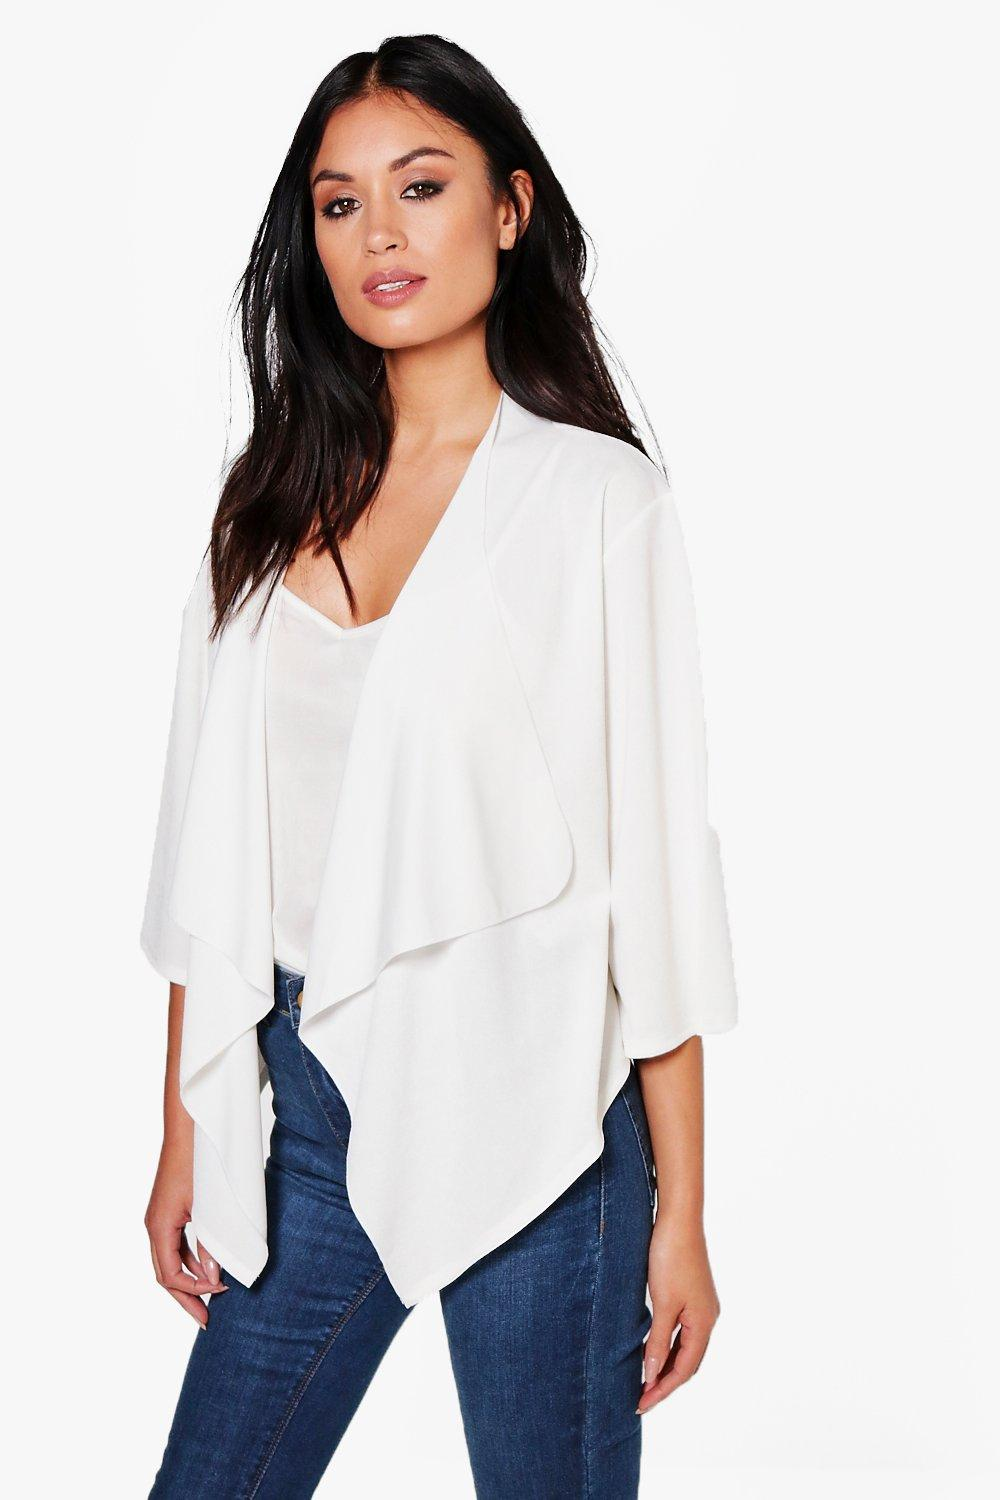 Molly Waterfall Blazer